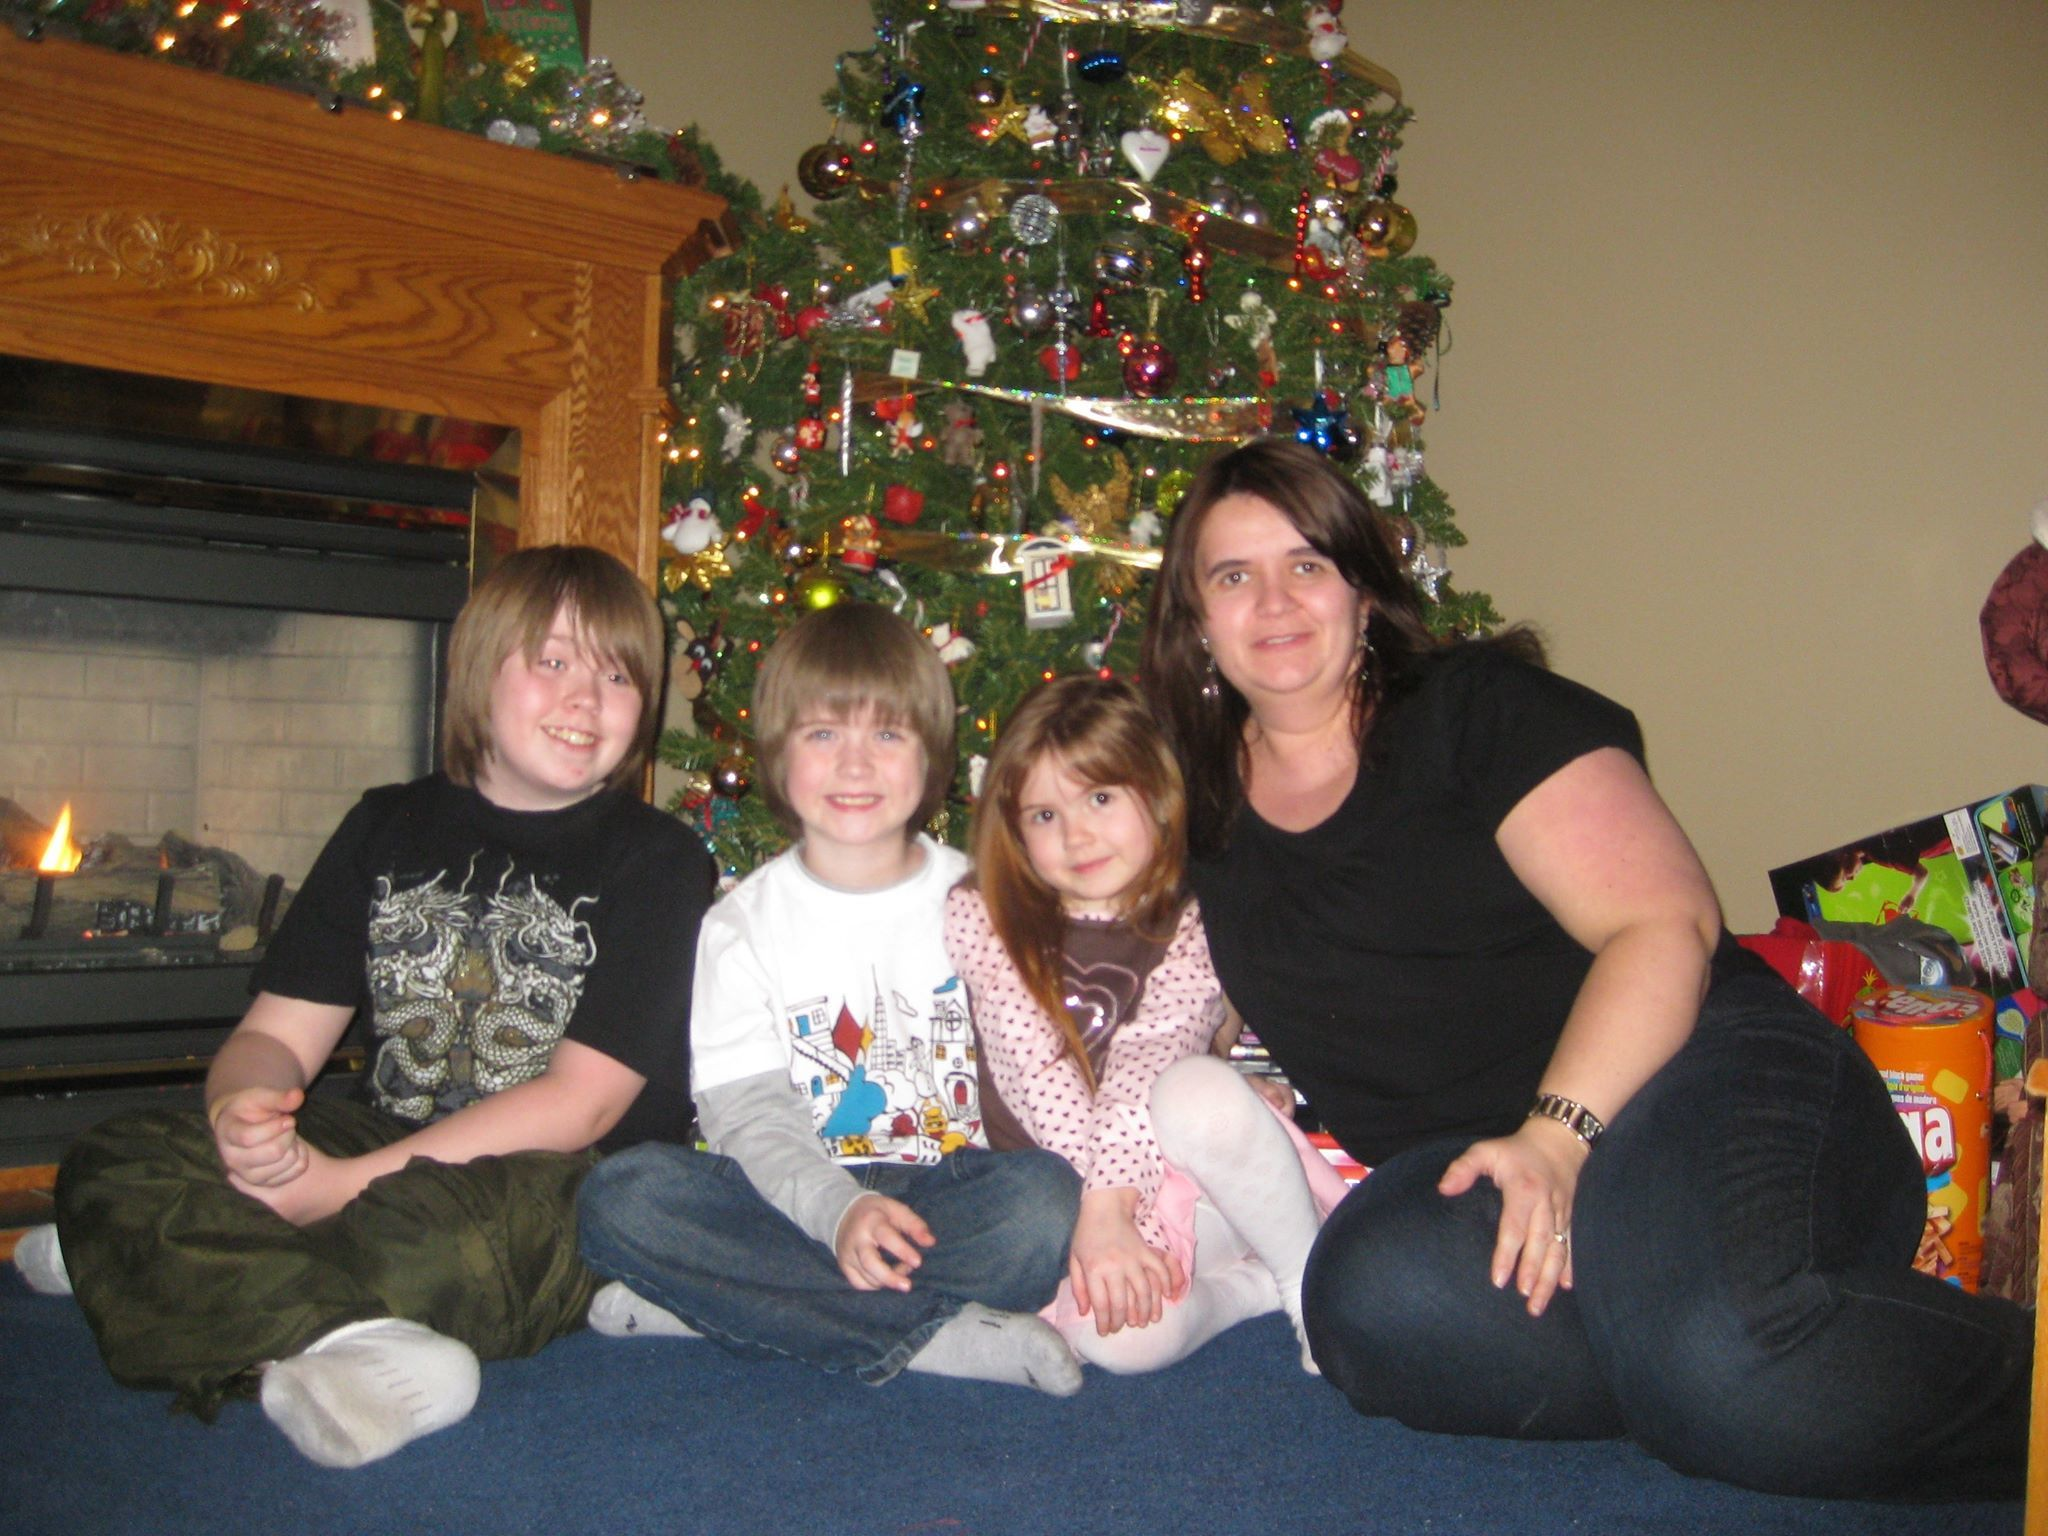 April McCarthy and her three children during Christmas 2009 — their first holiday without Chris McCarthy. (Submitted by April McCarthy)